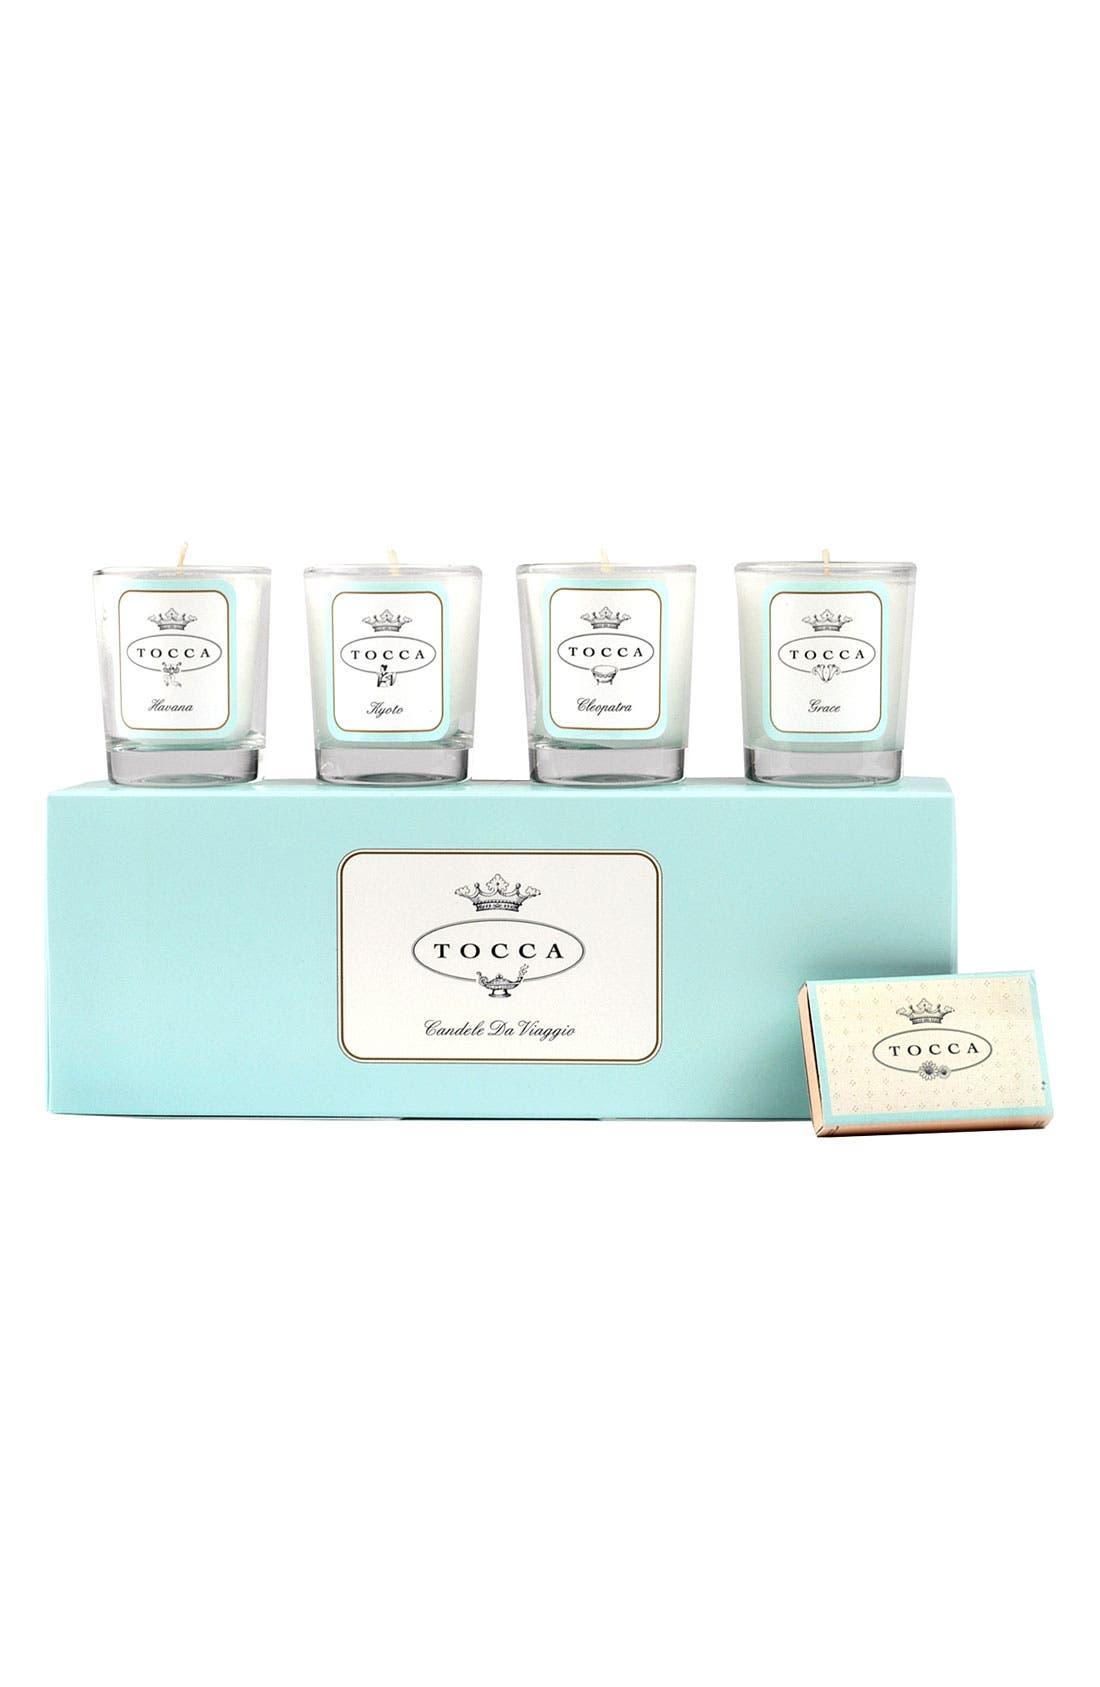 'Candele da Viaggio' Travel Votive Set,                         Main,                         color, 000